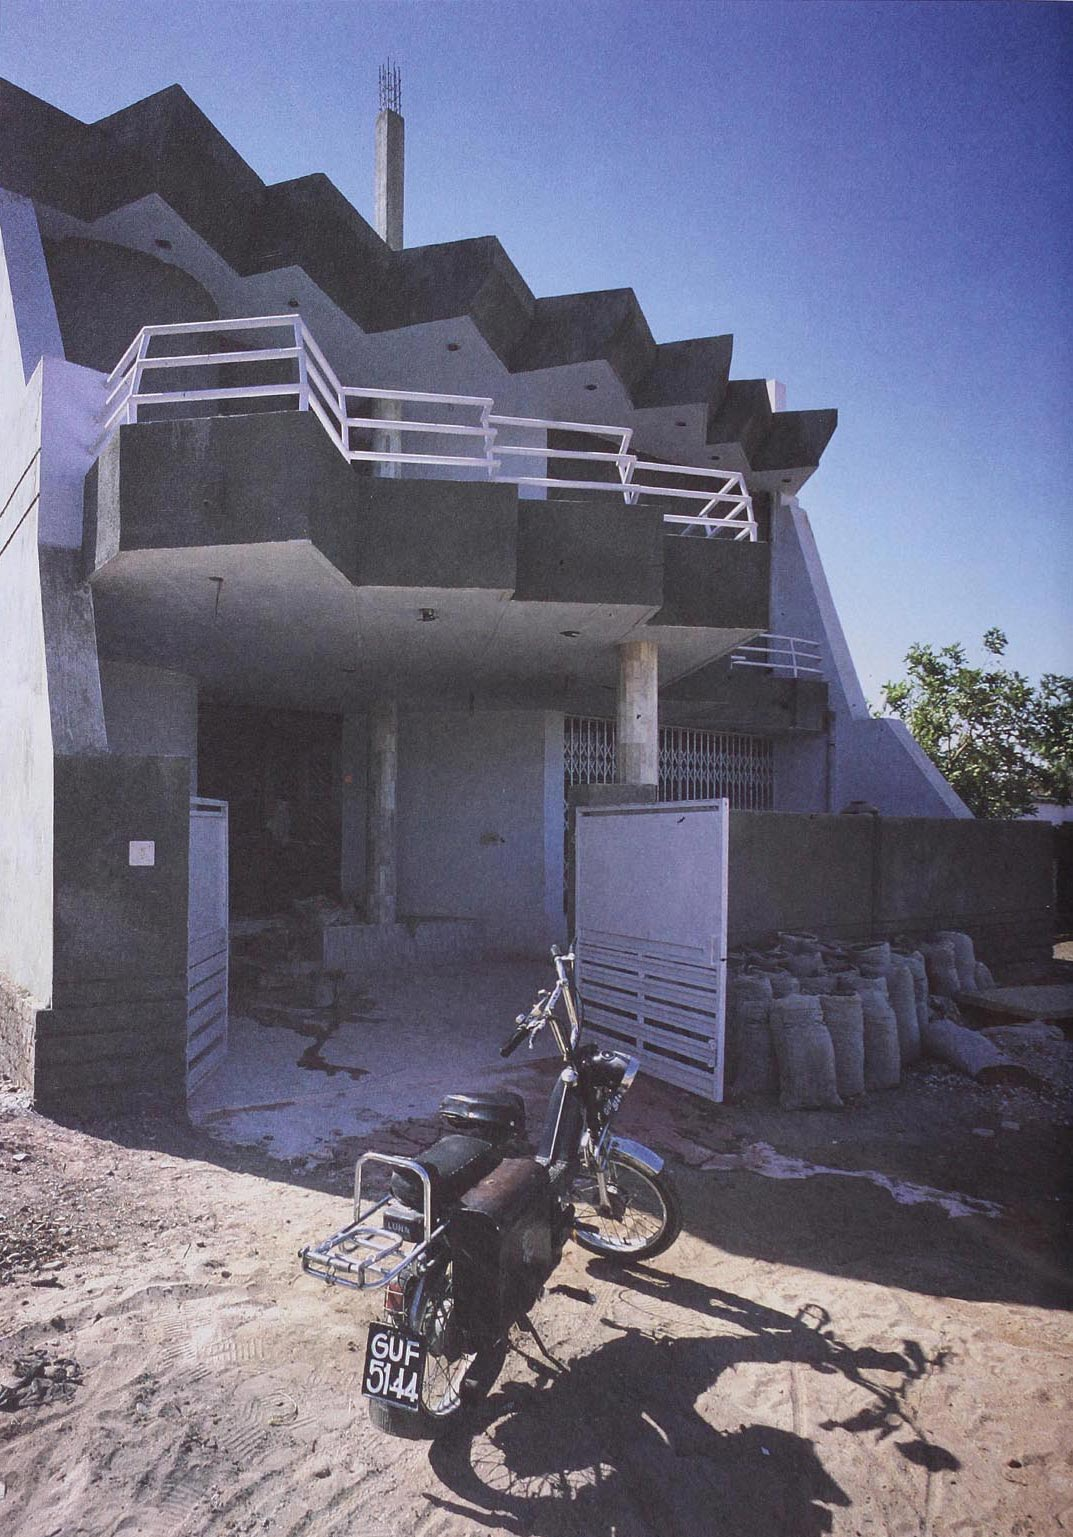 Ahmedabad, India, 1988. Photograph by E.Sottsass